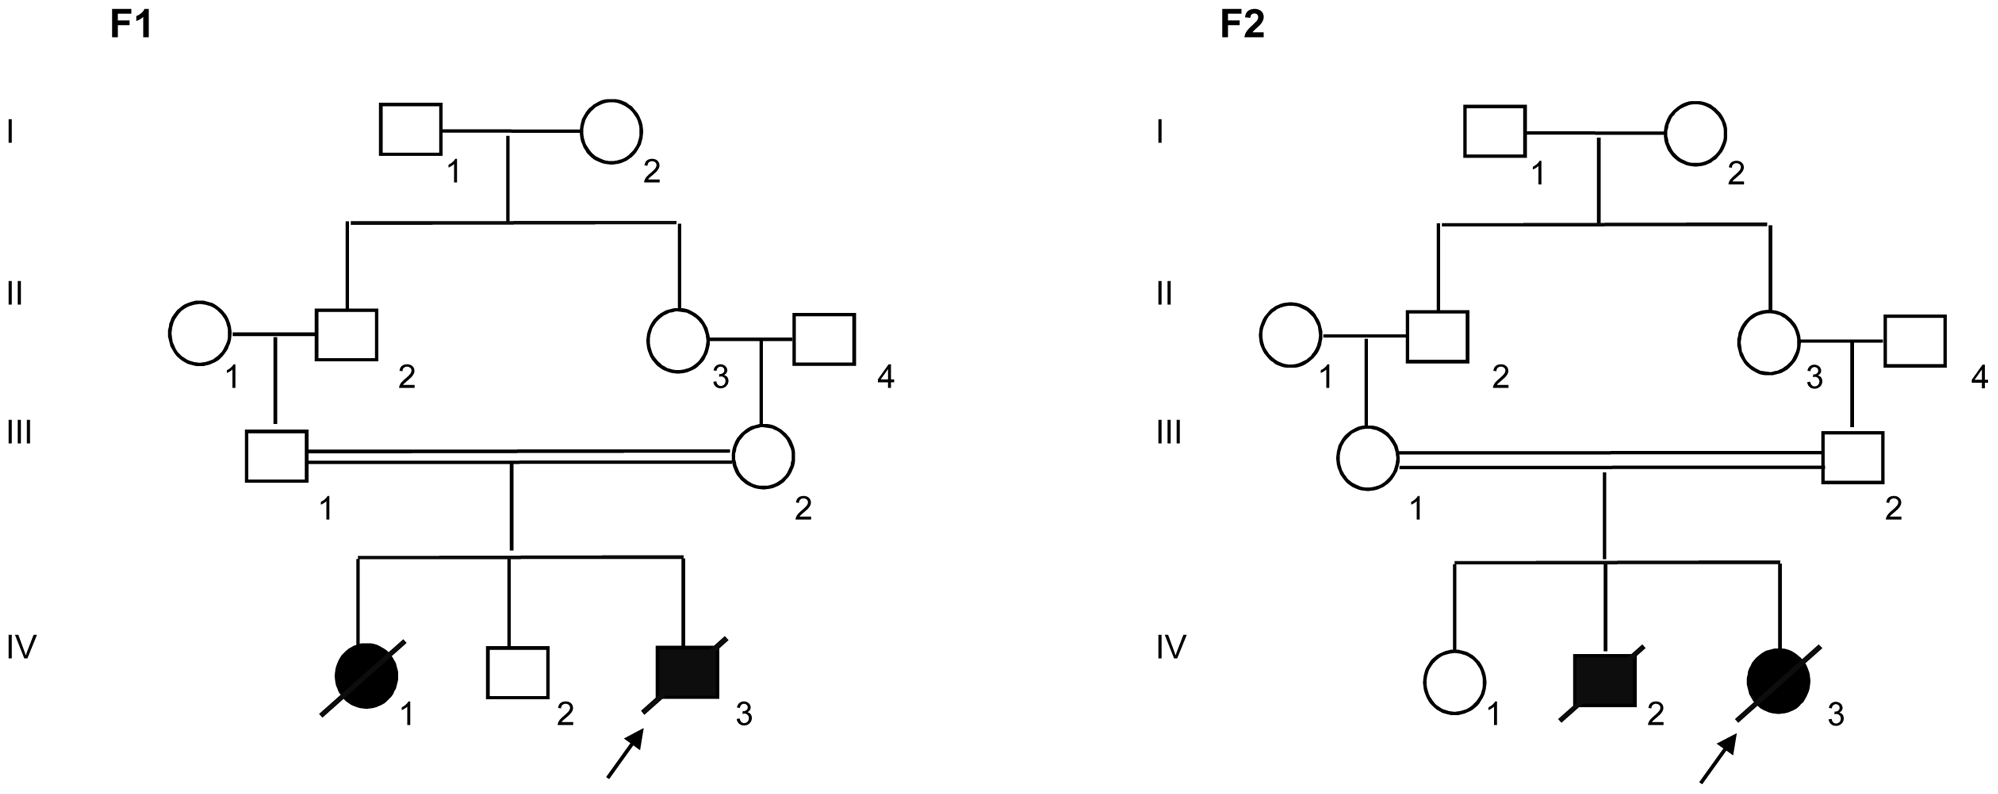 Pedigrees of the families F1 and F2 included in this study.